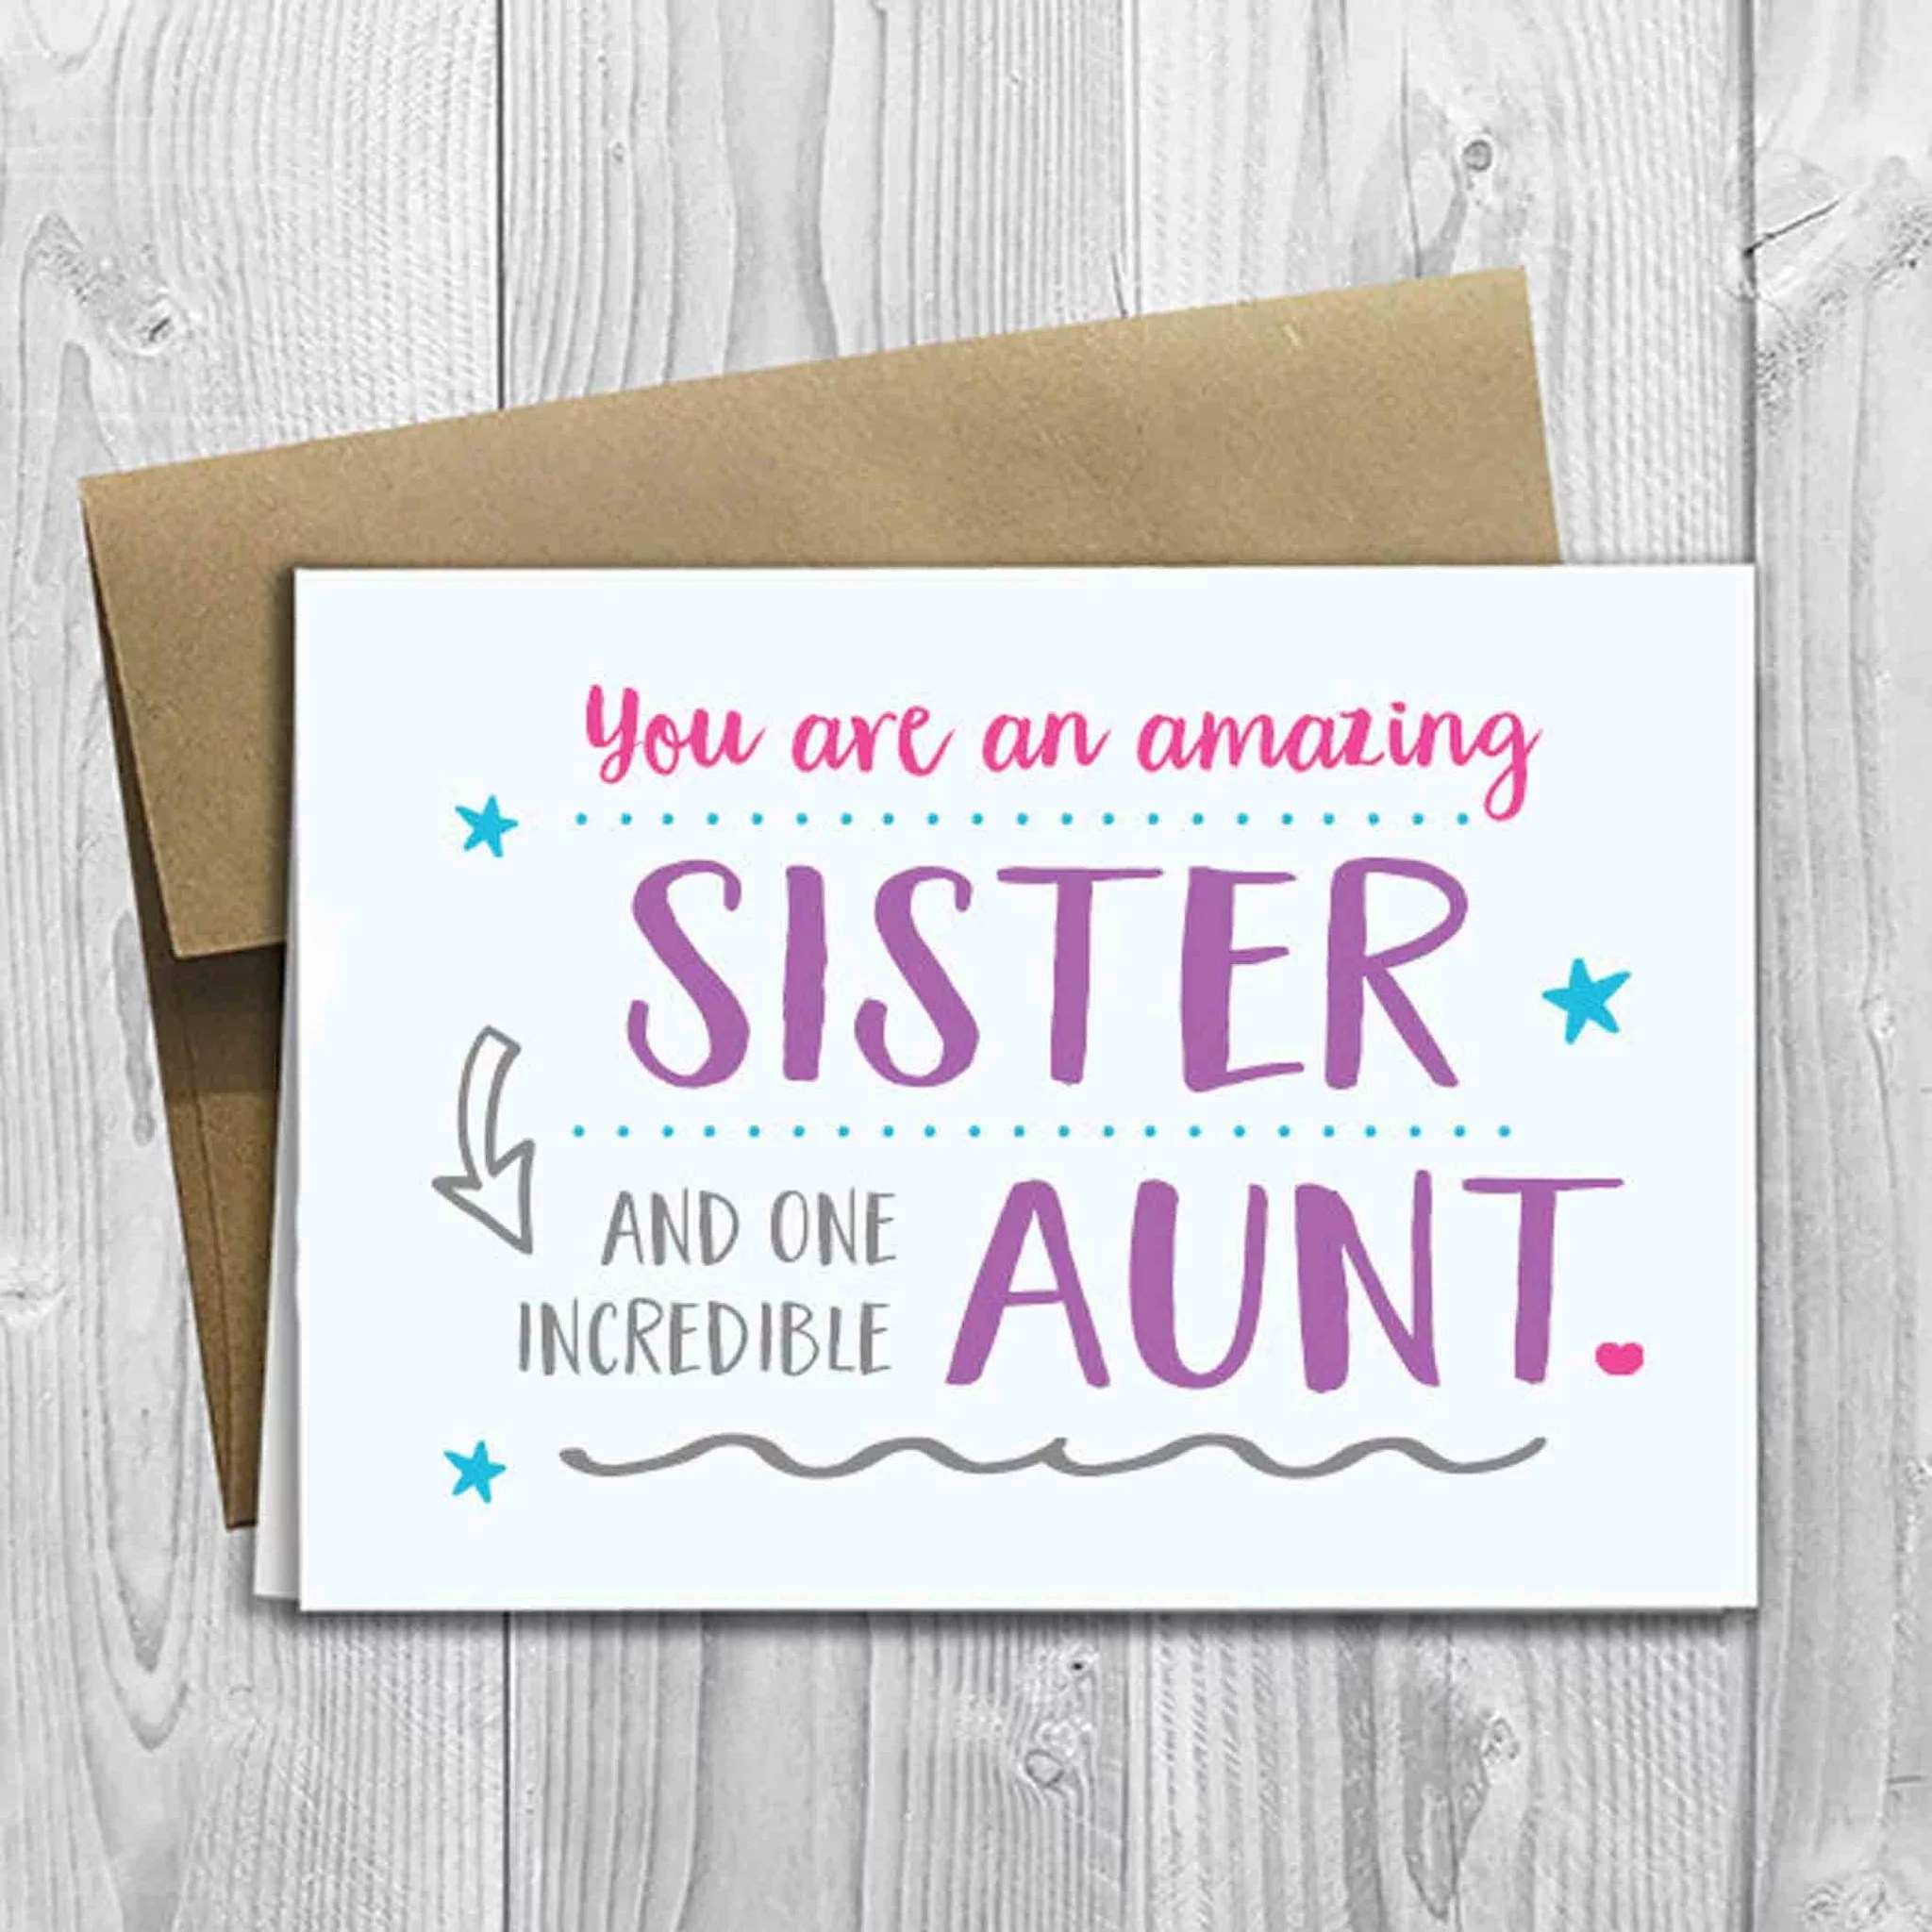 Popular Happy Day Sister Popsugar Moms Happy Mors Day Sister Law Image Happy Mors Day Sister I Love You inspiration Happy Mothers Day Sister